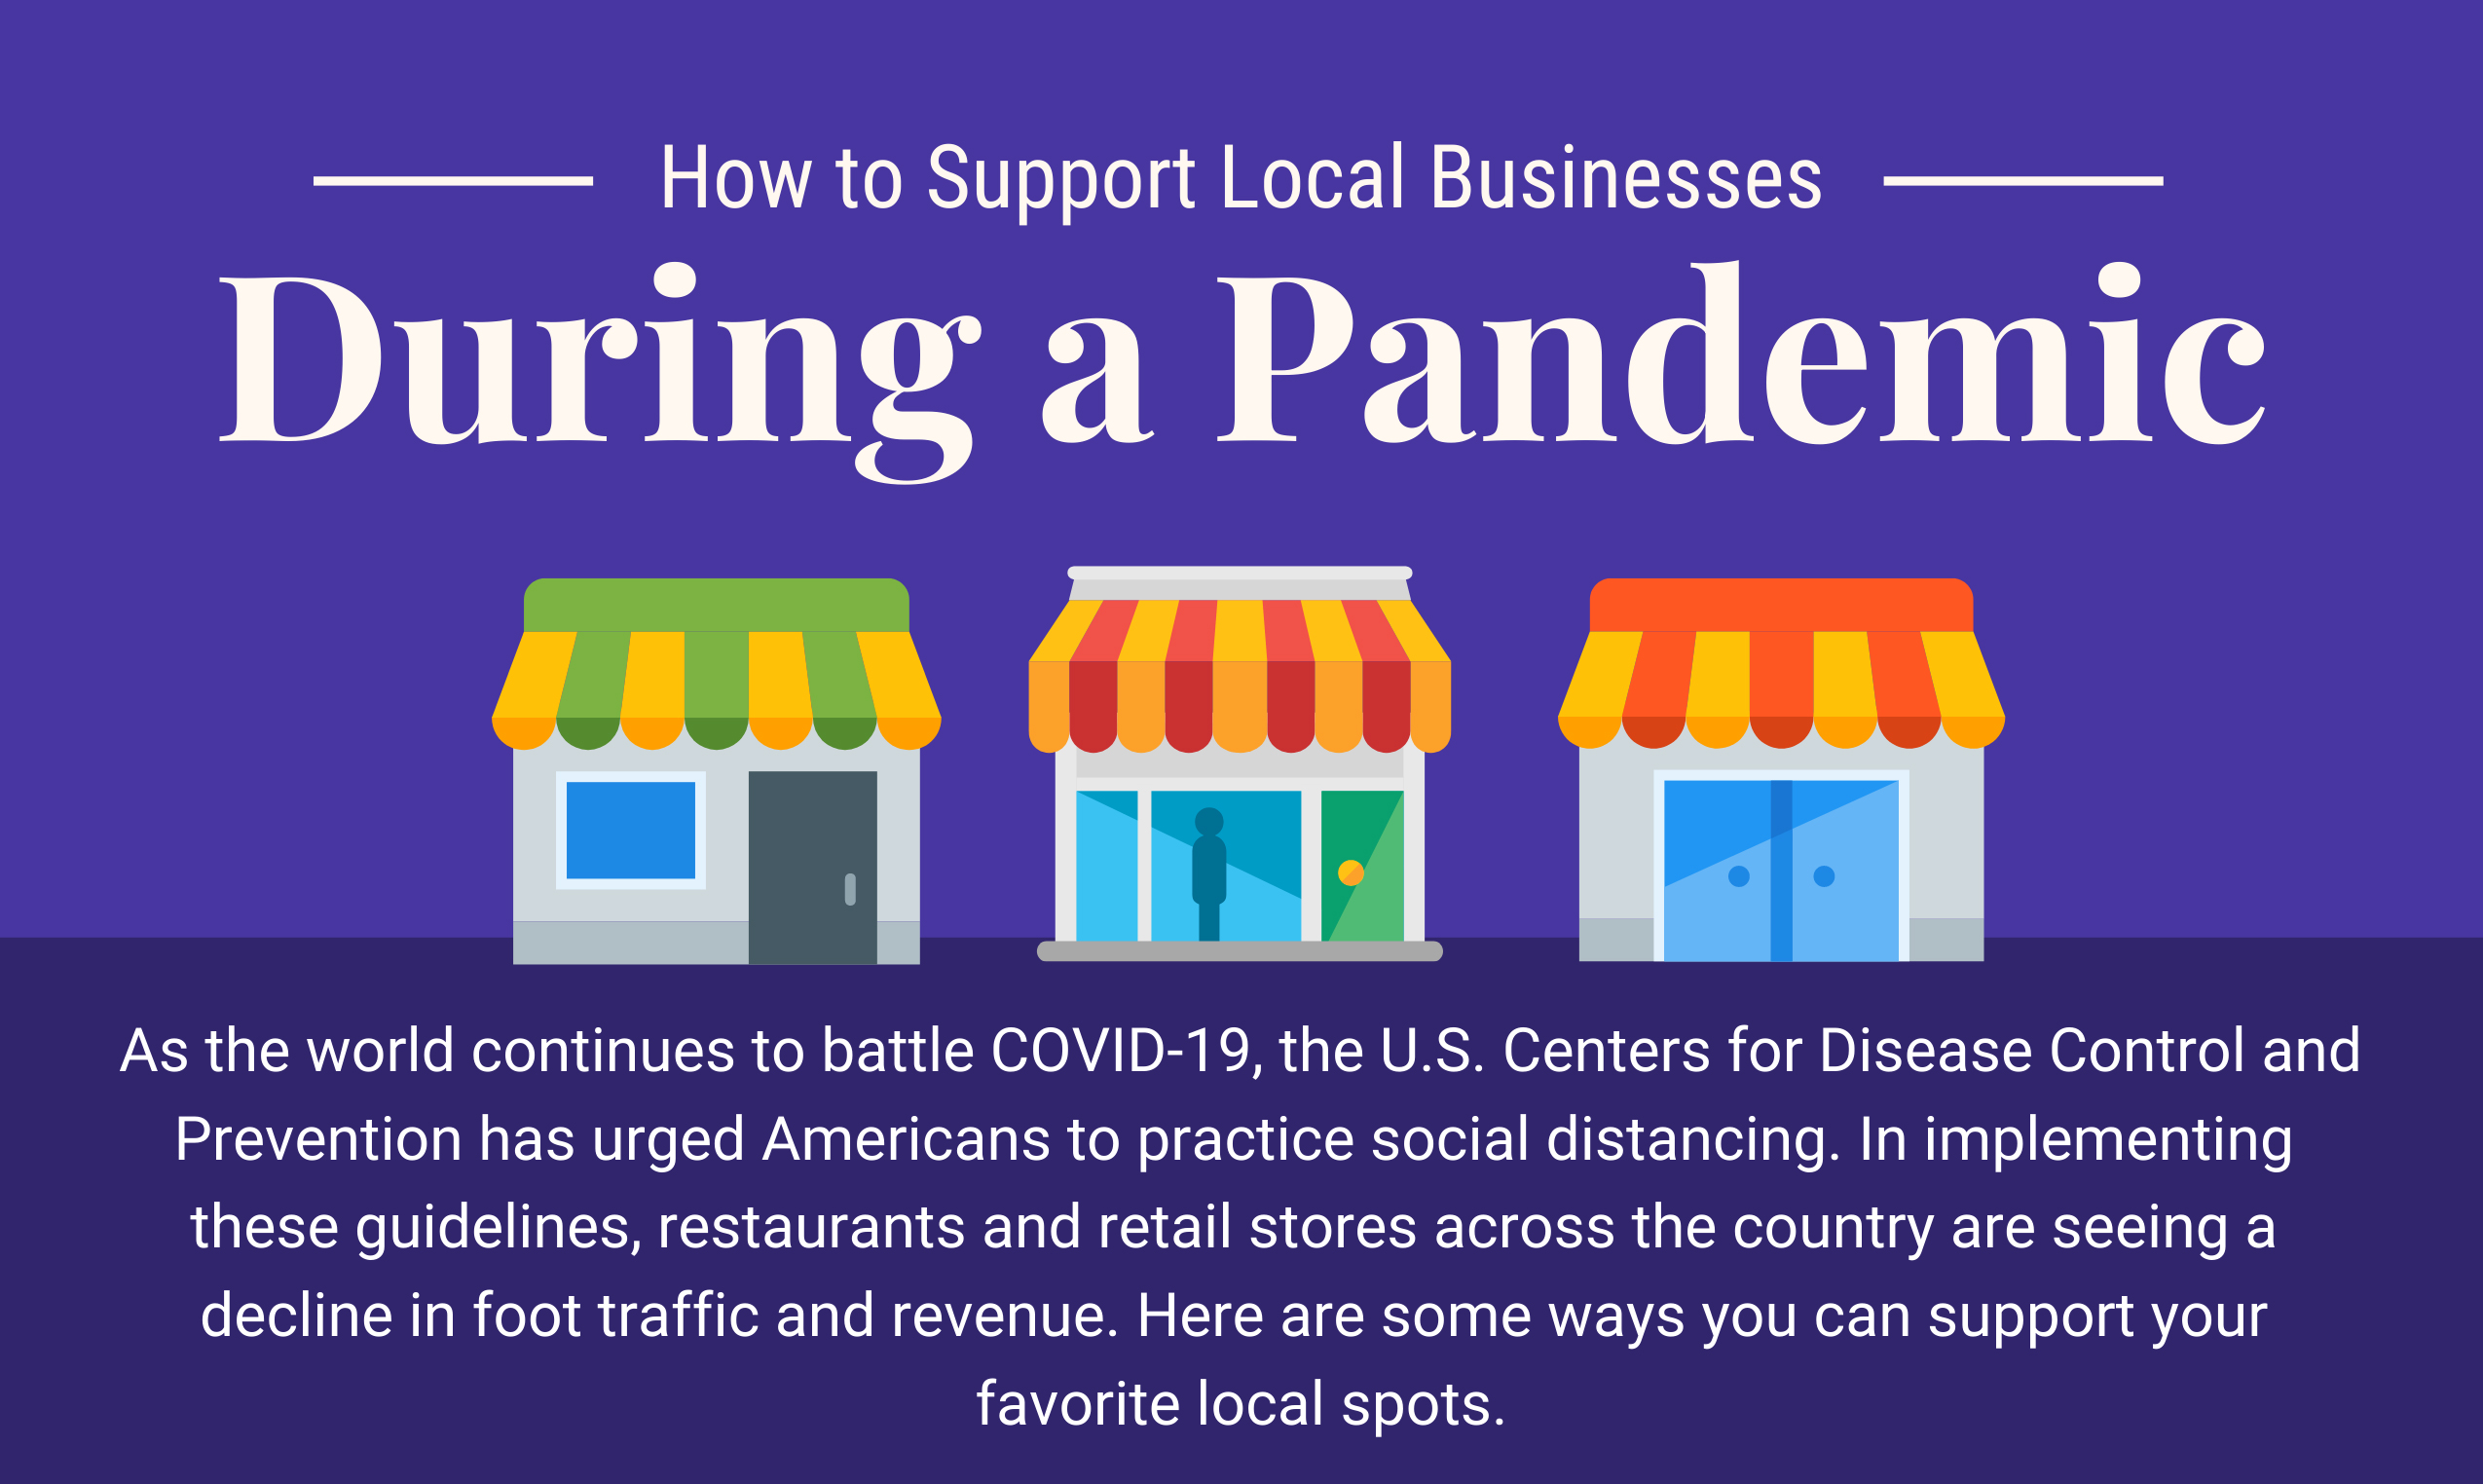 How to Support Local Businesses During a Pandemic